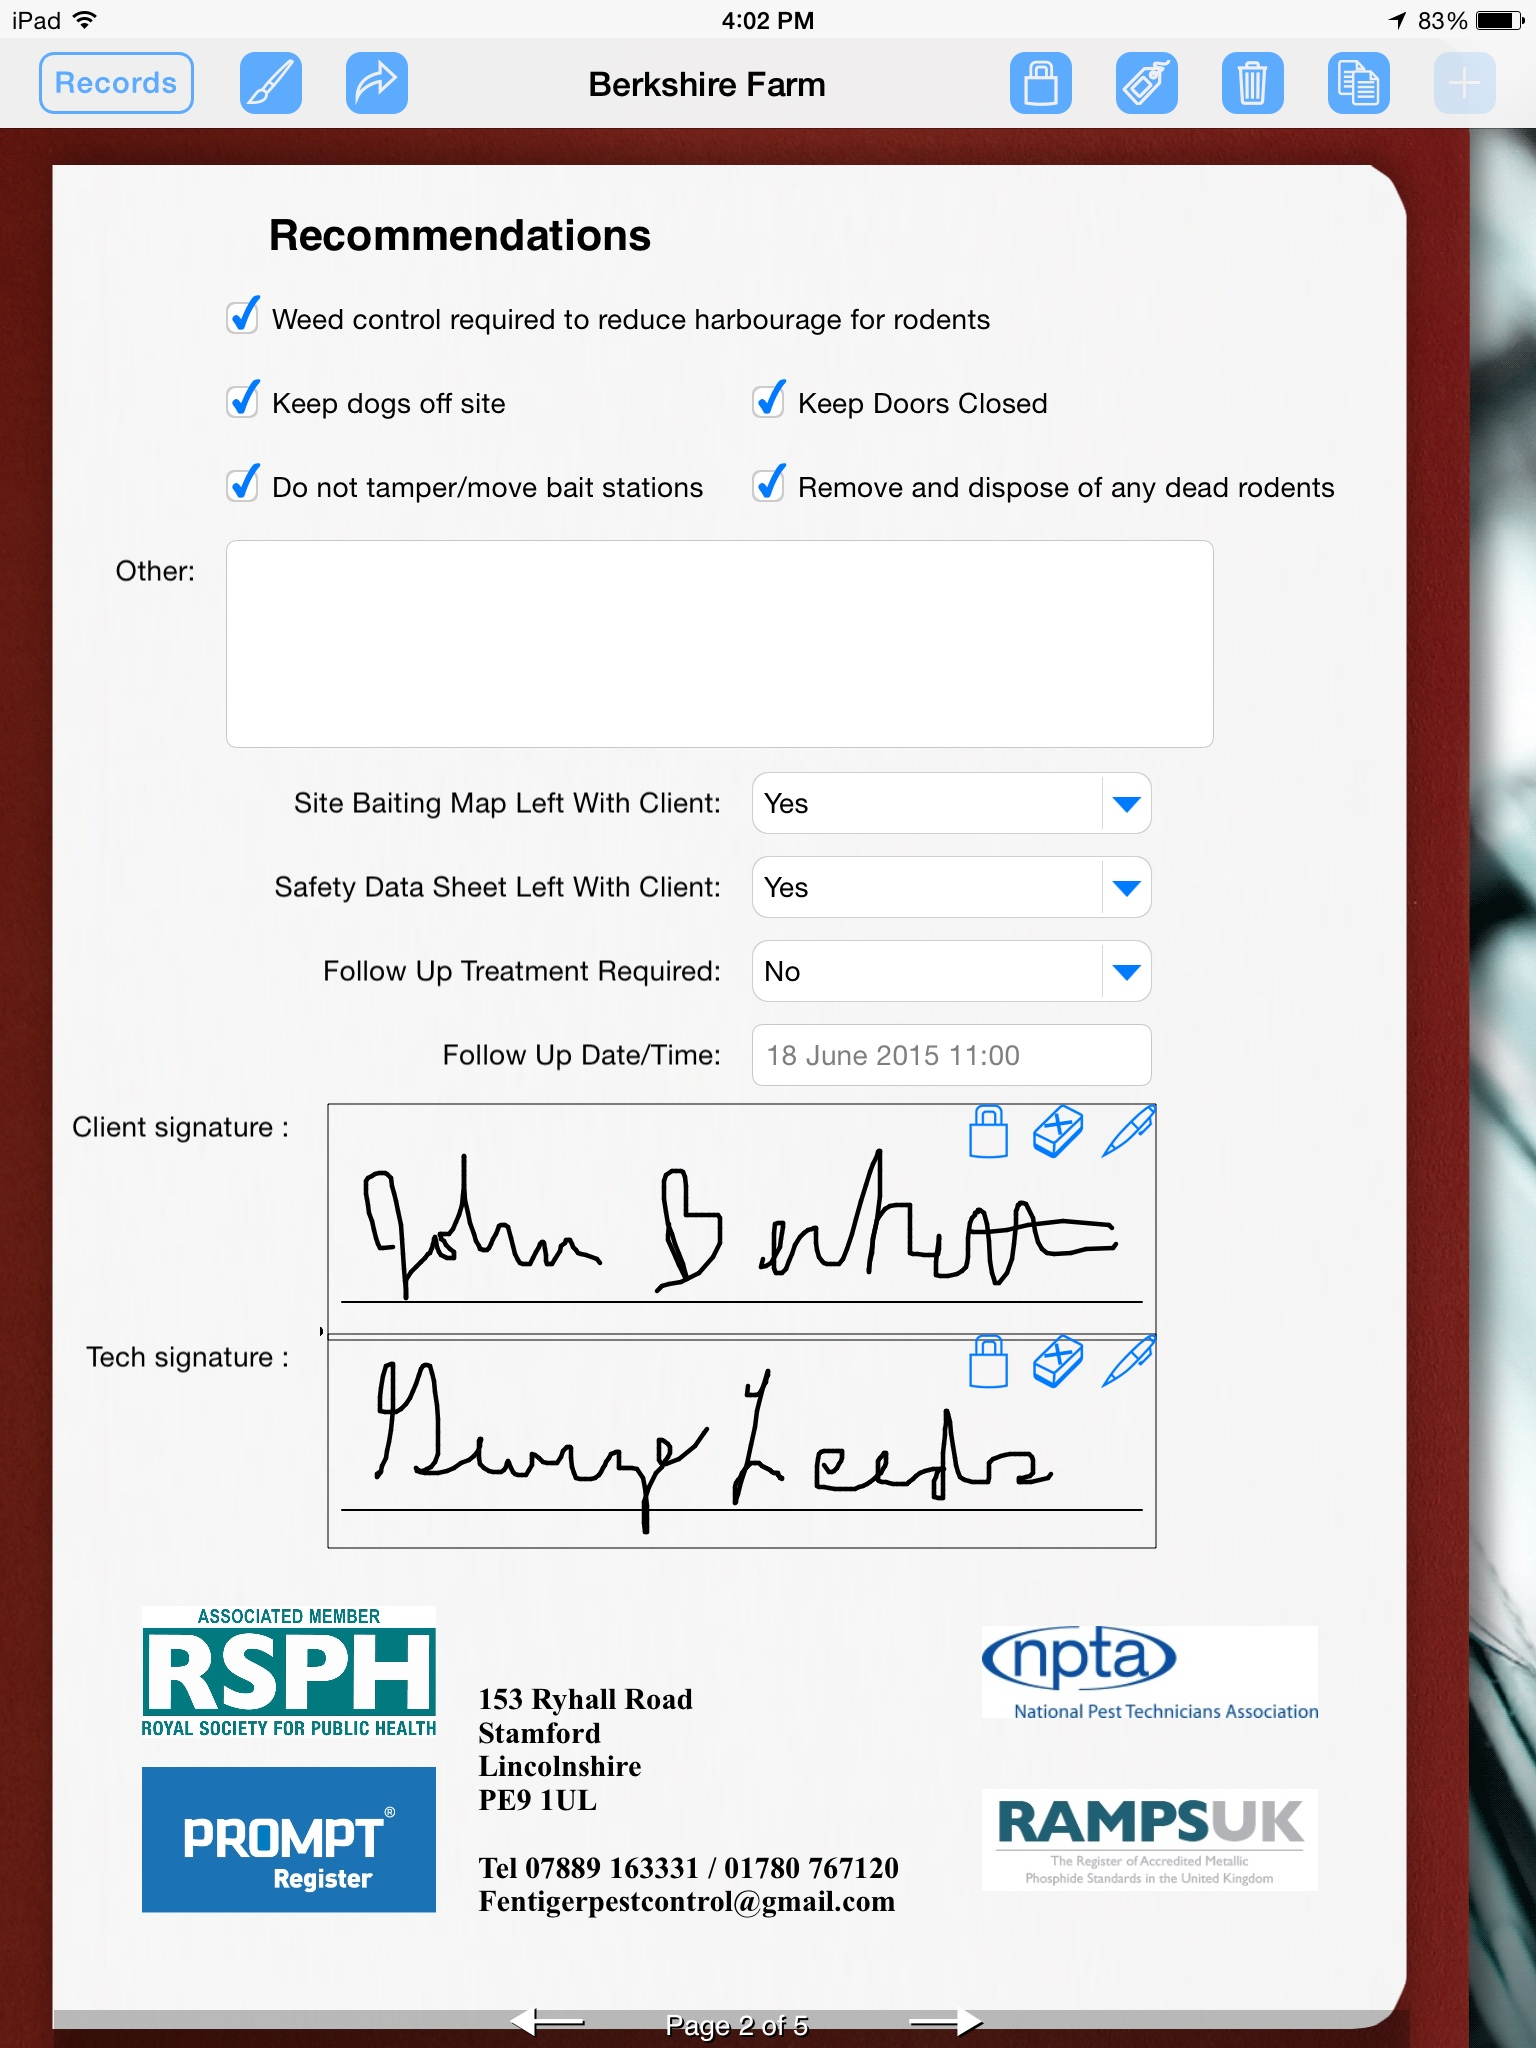 Pest Control Uses iPad to Prepare Service Report | Form Connections